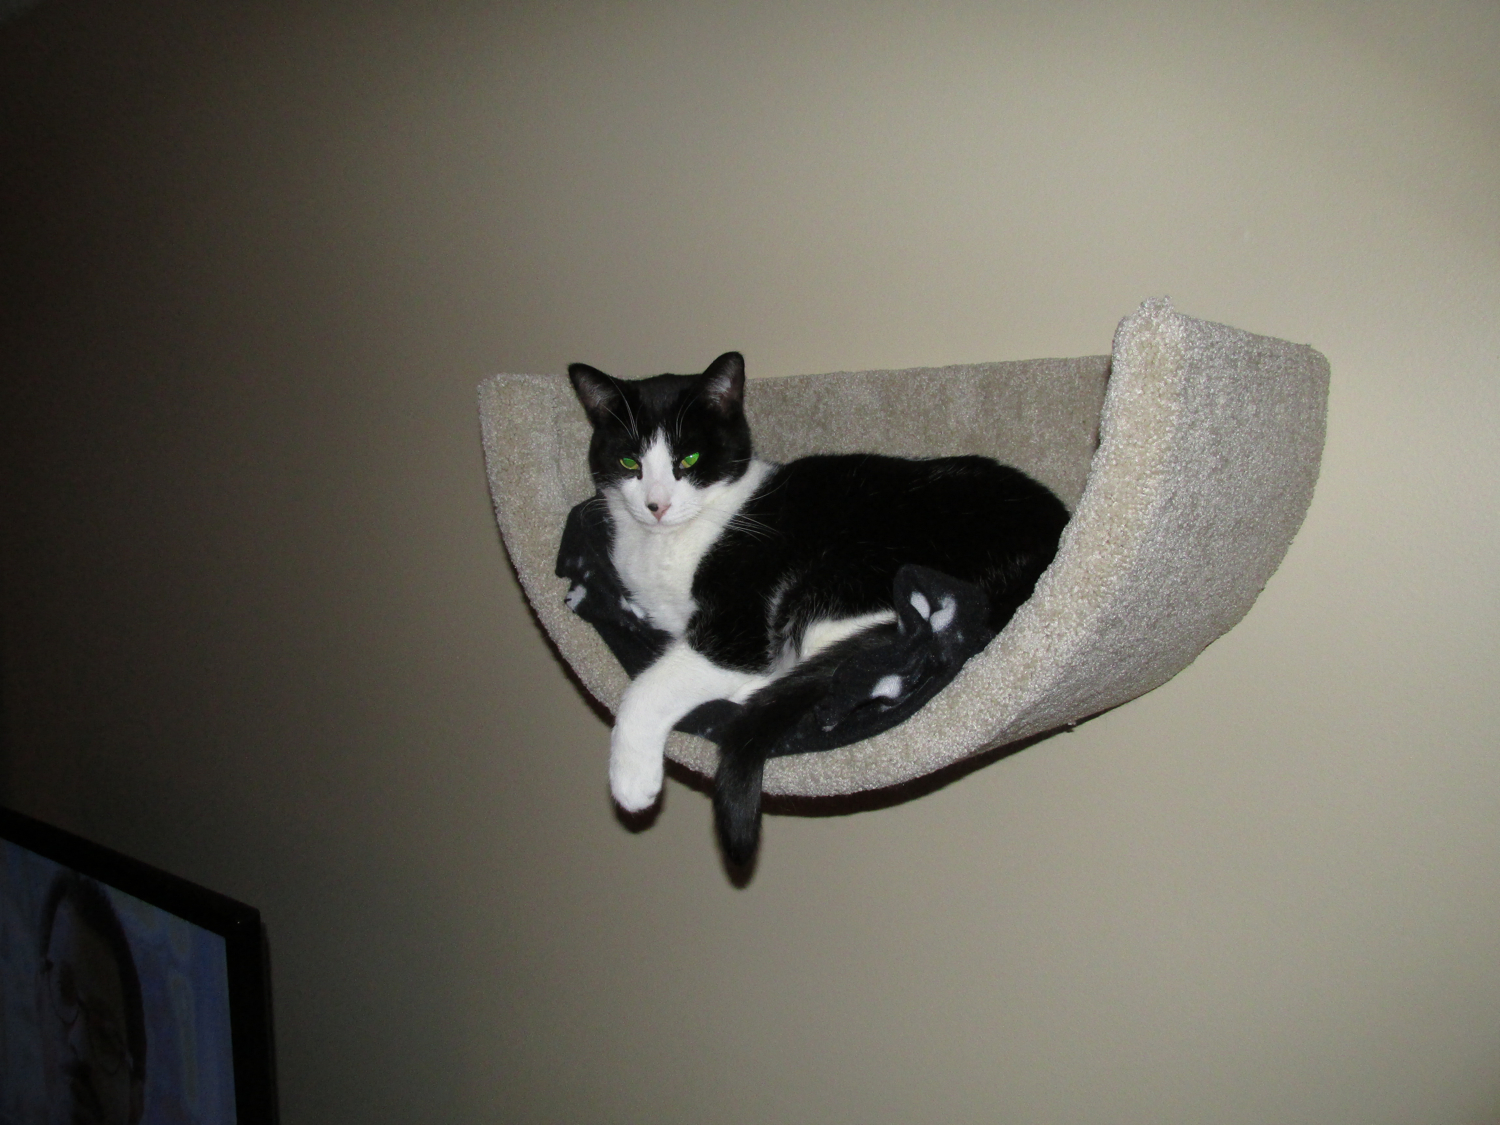 Hungry and homeless cat rescue ottawa on cat trees for sale ottawa amipublicfo Image collections